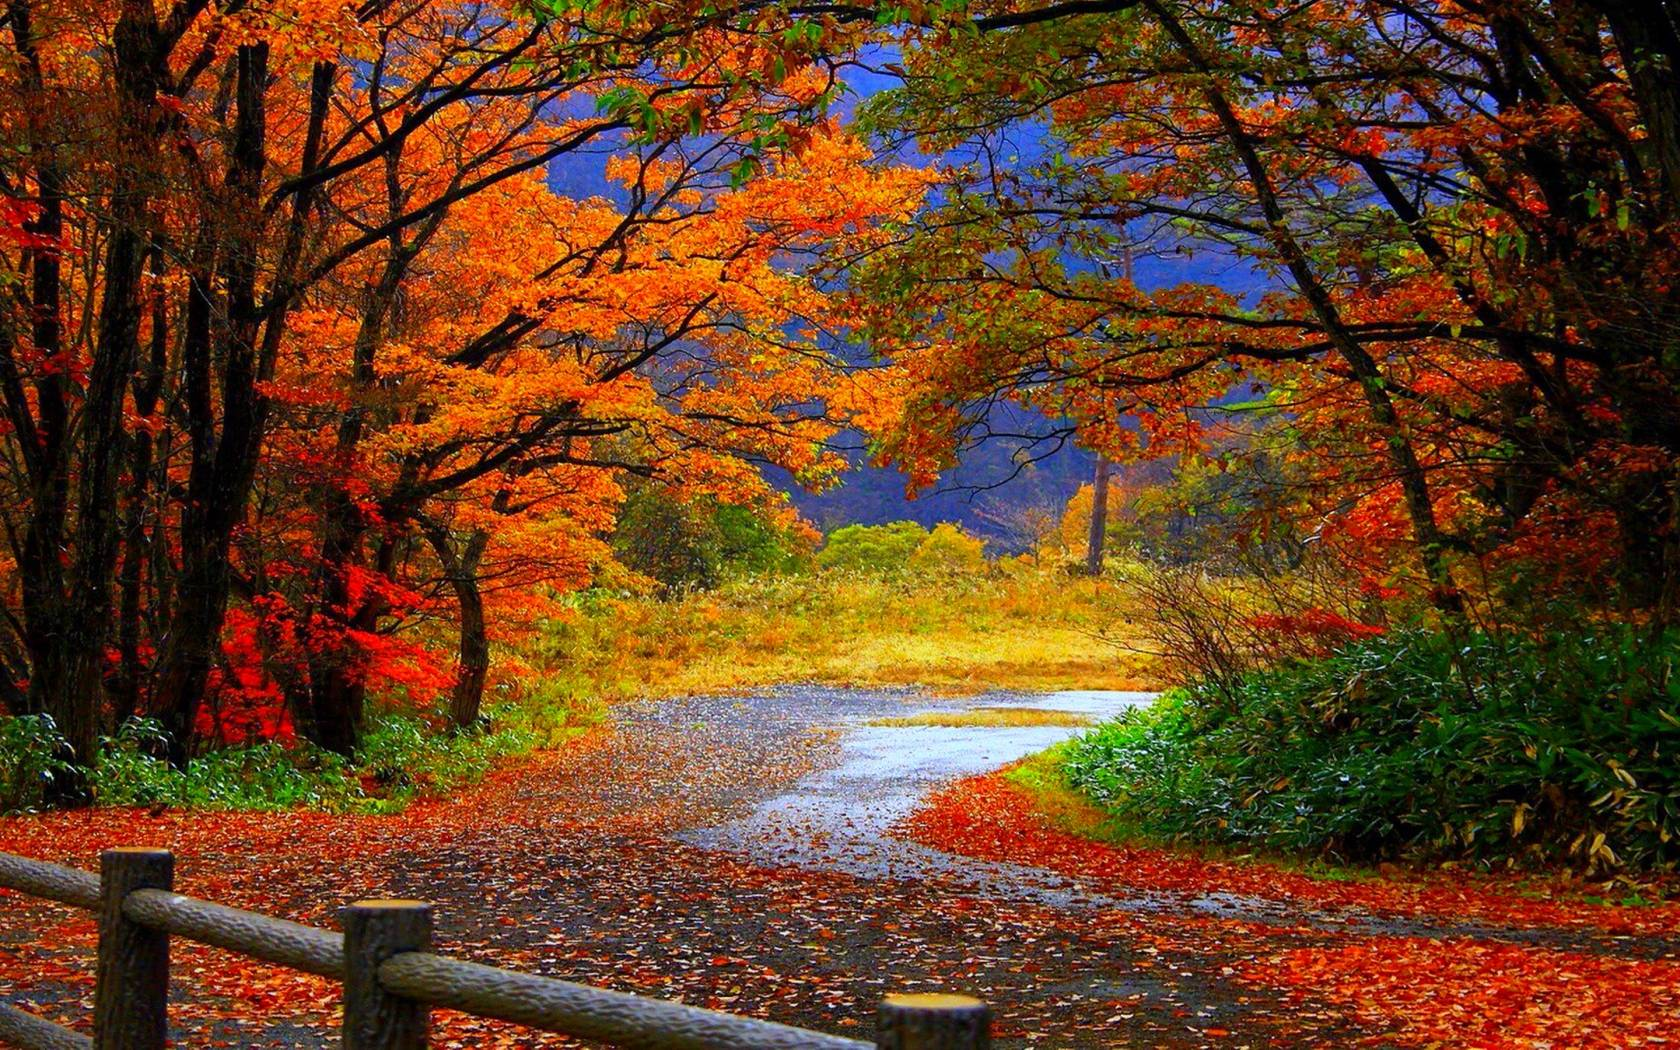 Fall Season Live Wallpaper For Android Top 6 Android Autumn Live Wallpapers To Enjoy Falling Leaves